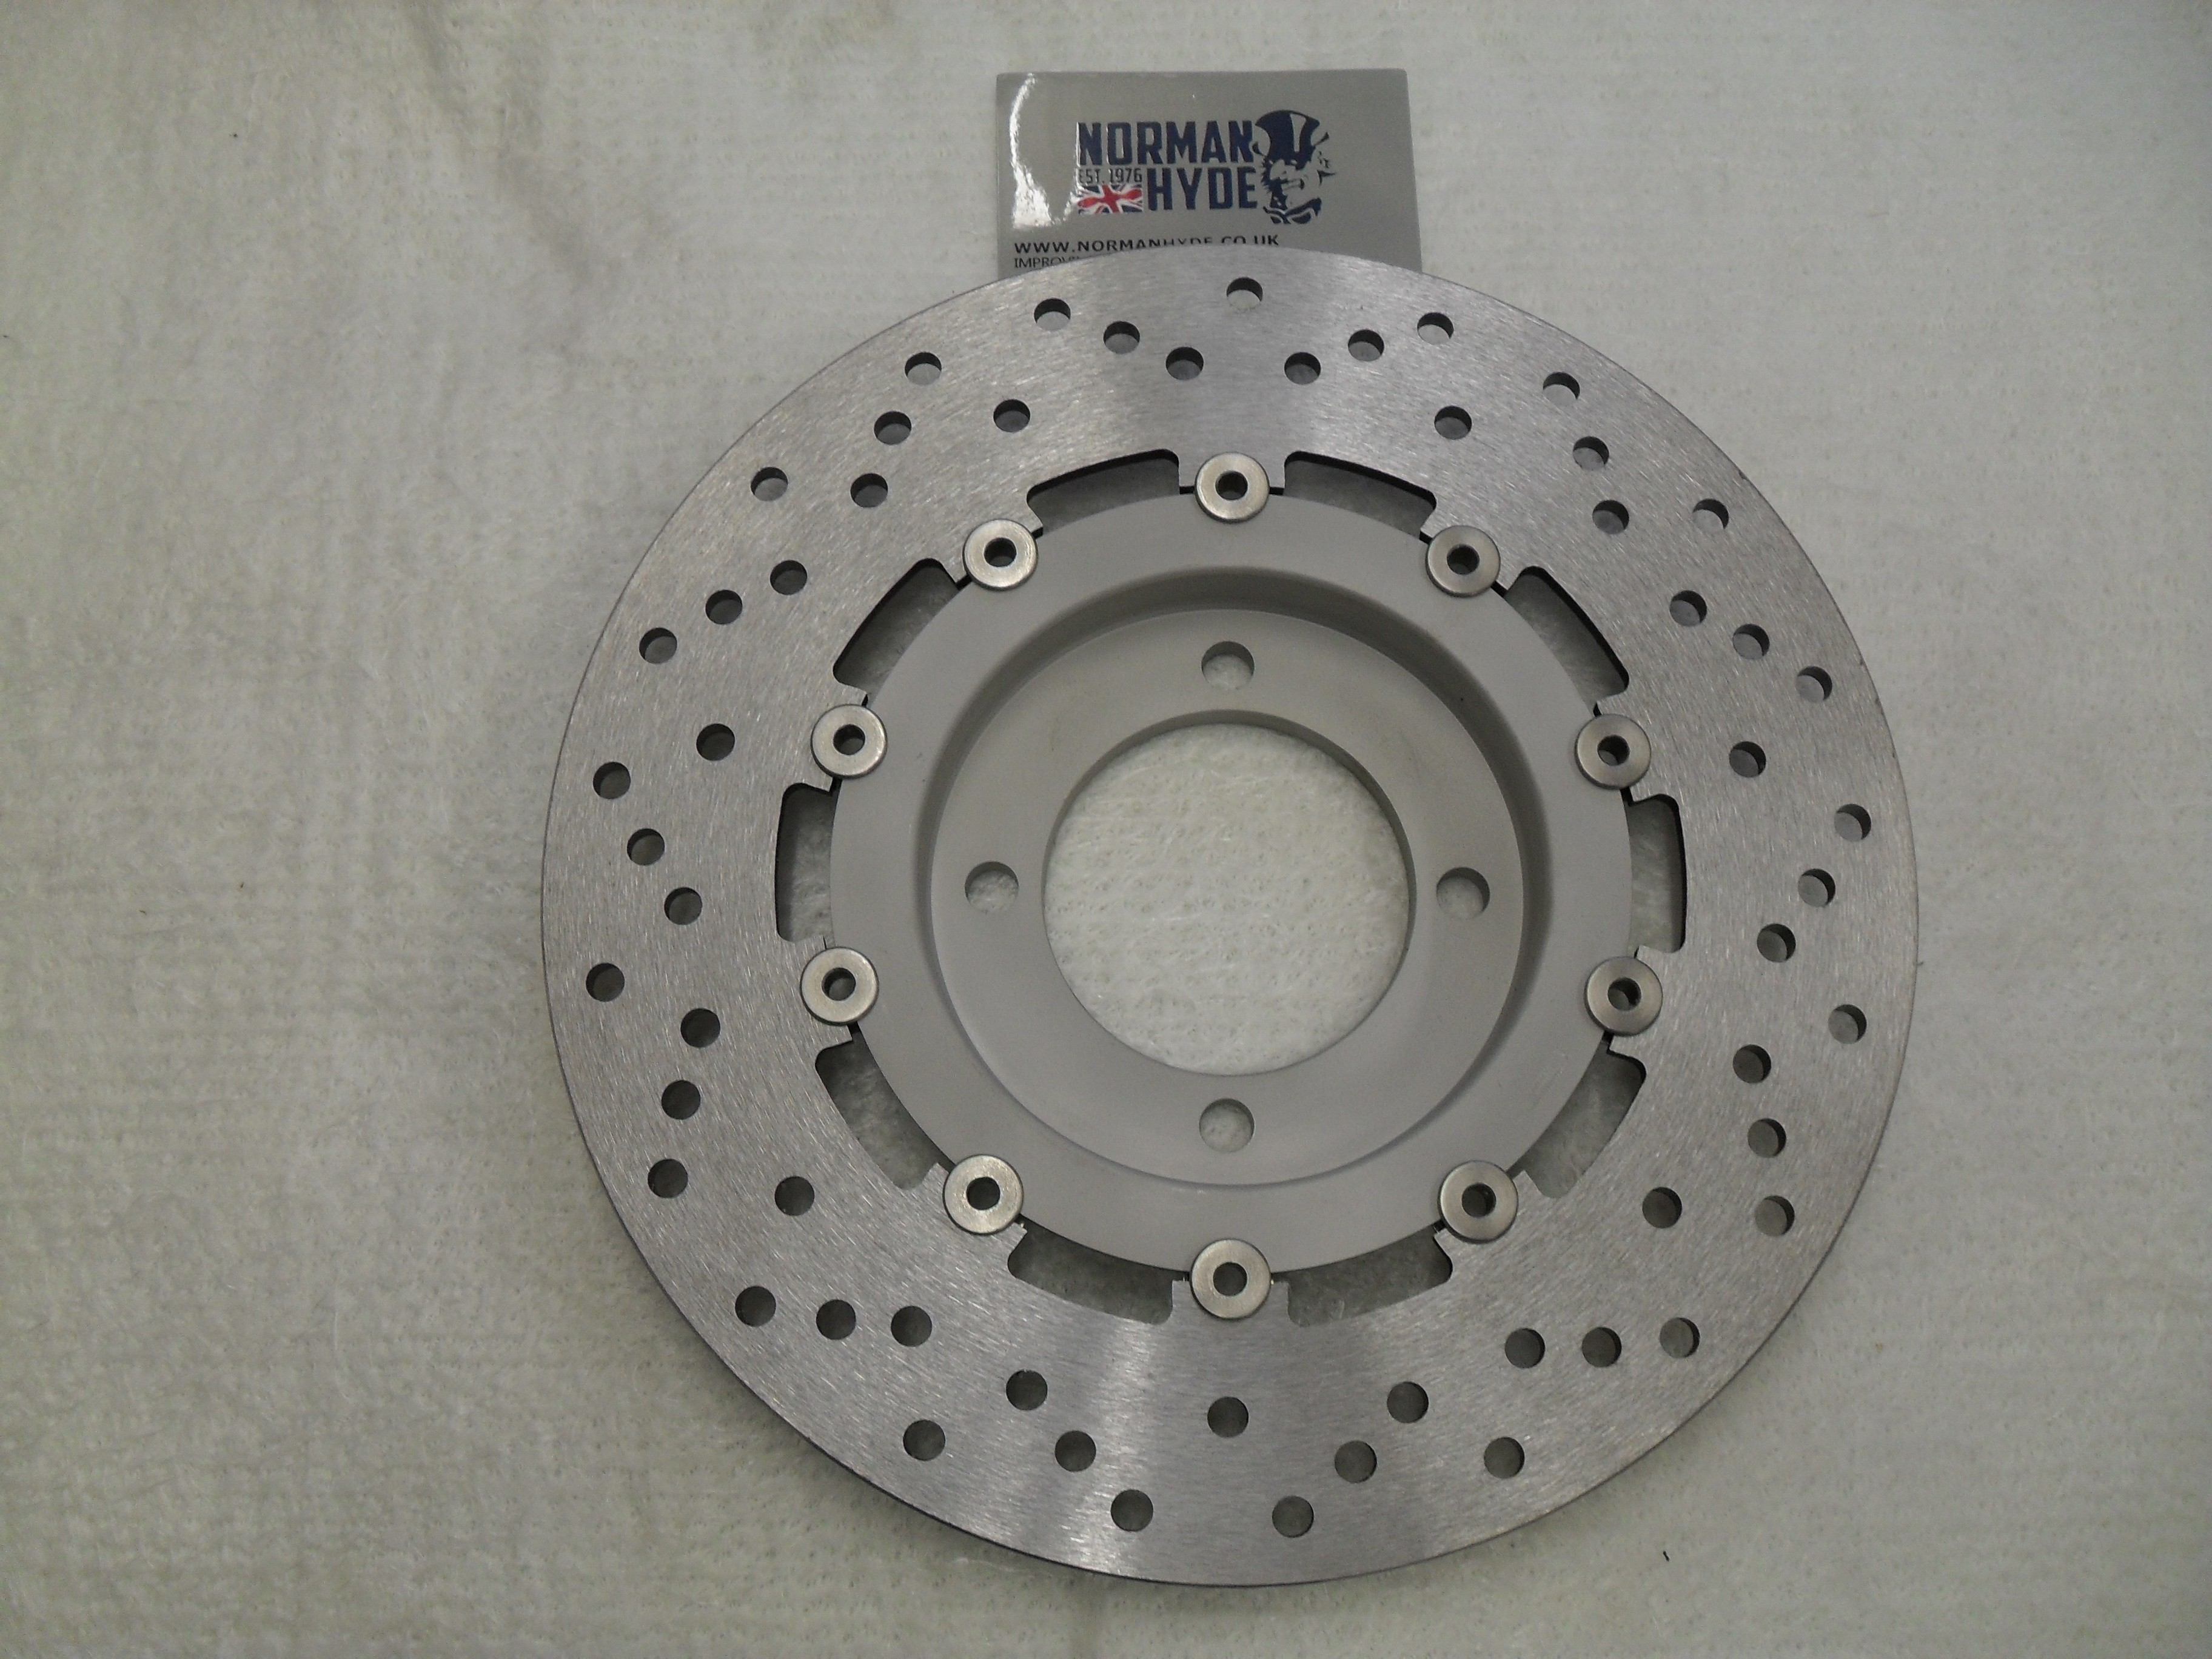 4 HOLE FLOATING DISC 10 INCH